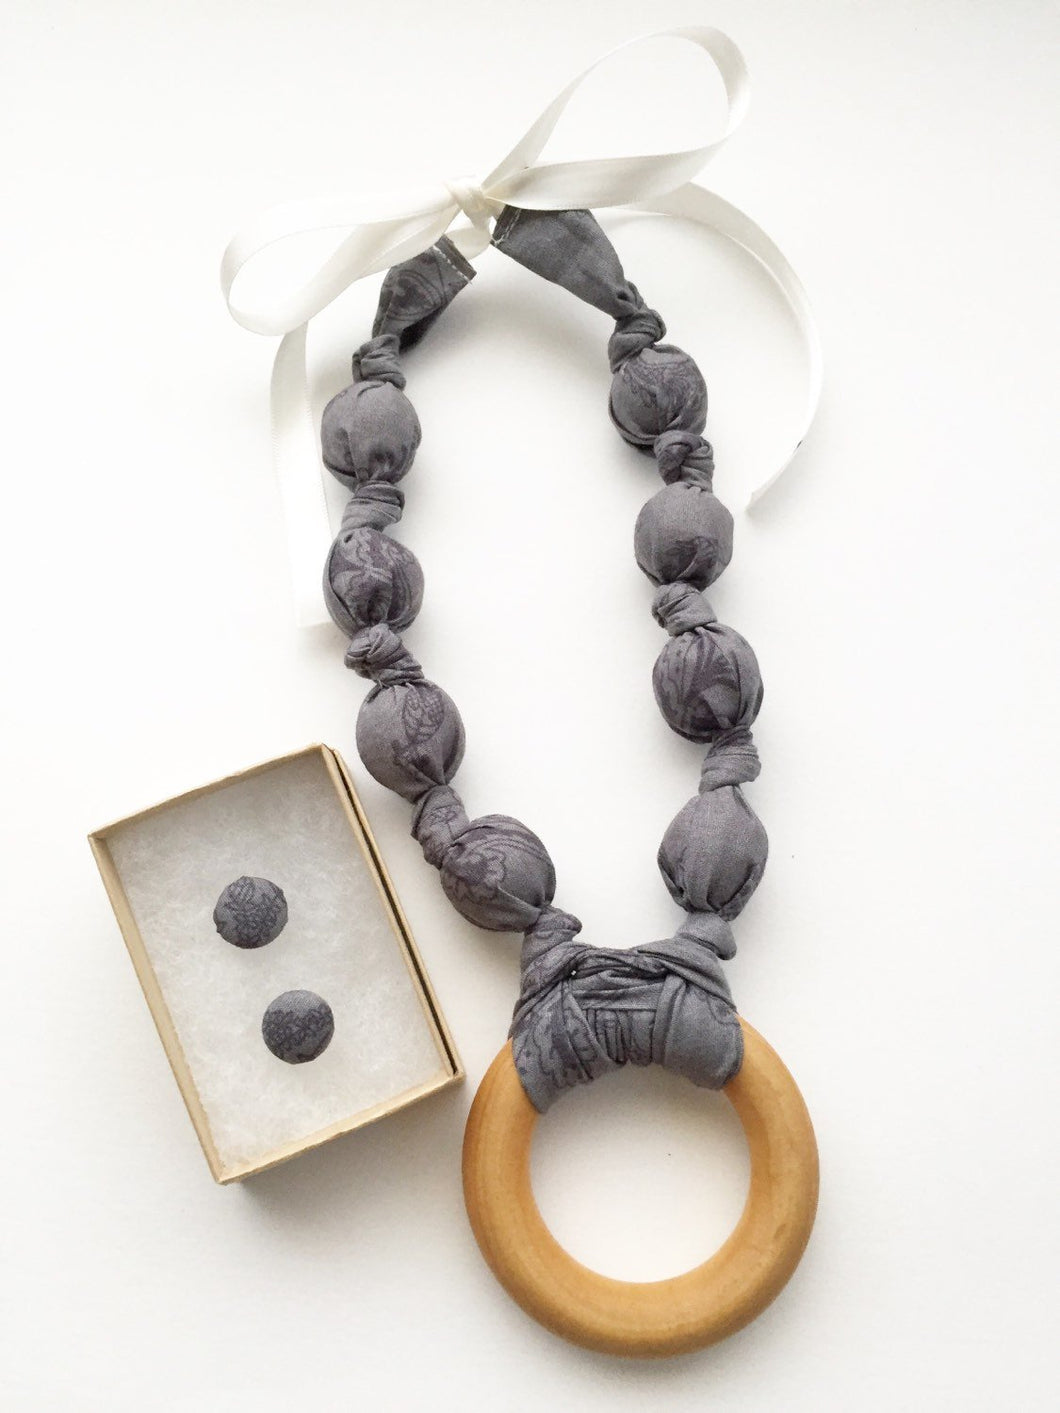 Kohl Vines Fabric Teething Ring Nursing Necklace by Wee Kings